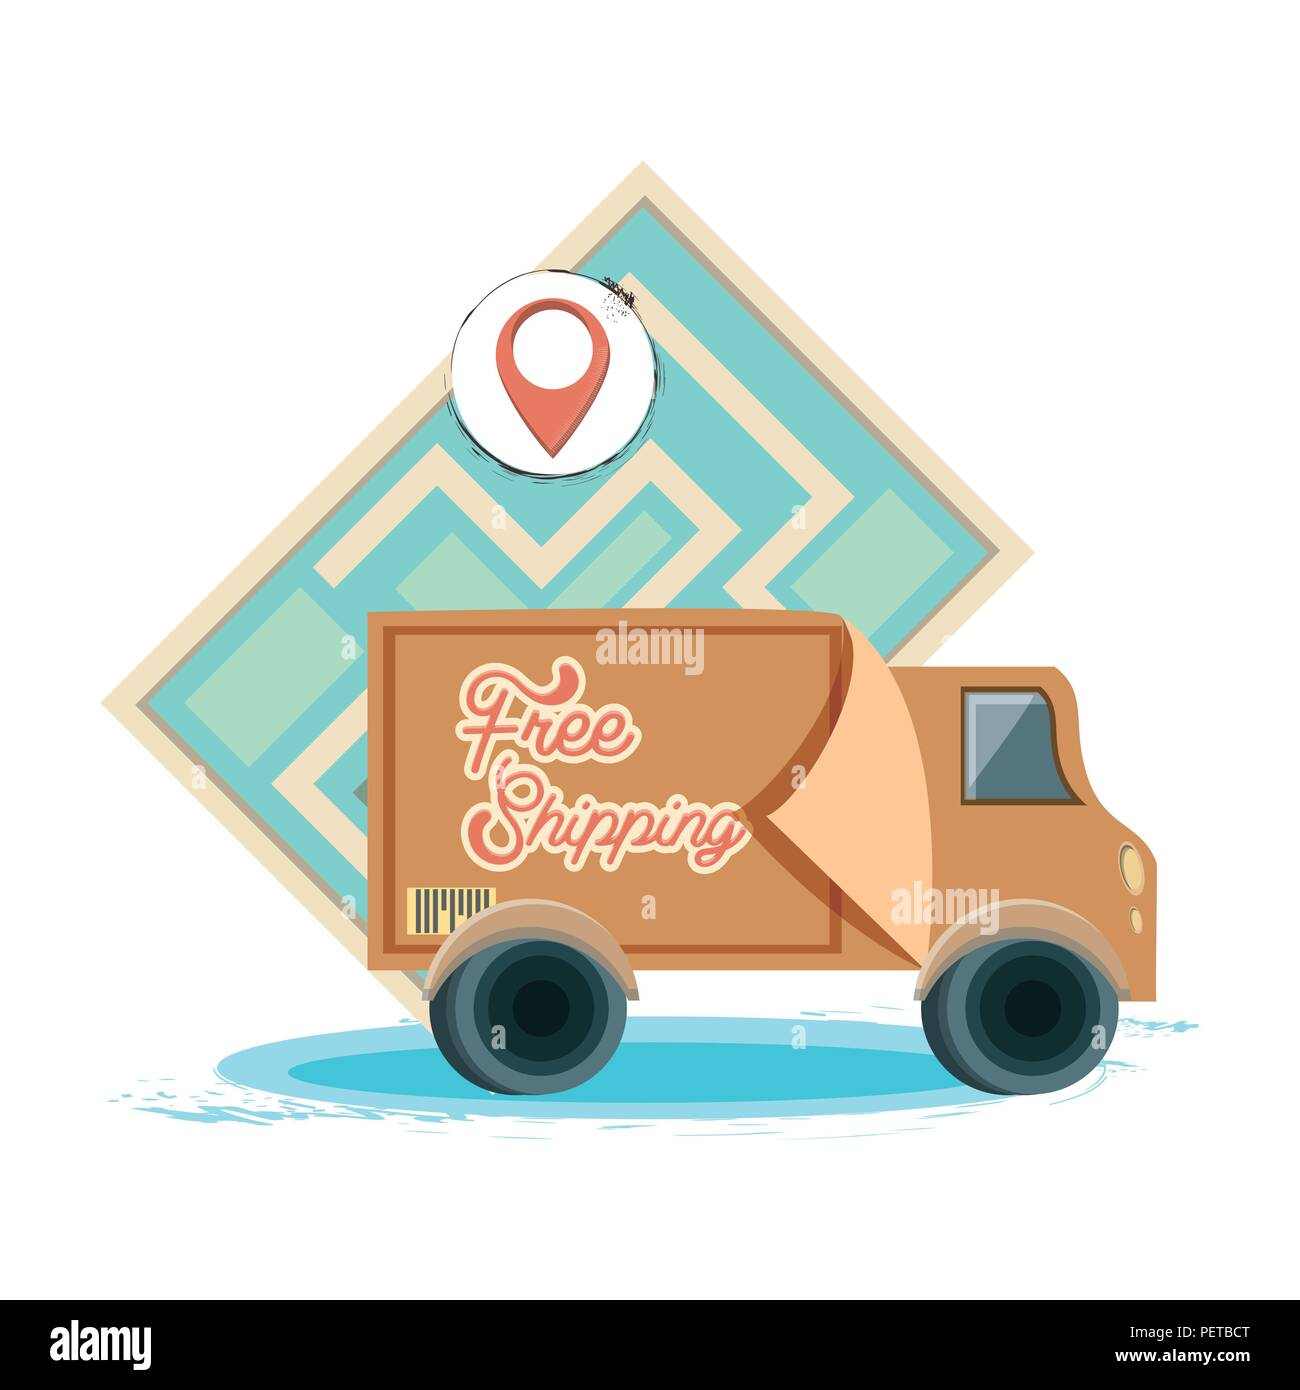 free shipping service with truck vector illustration design - Stock Image